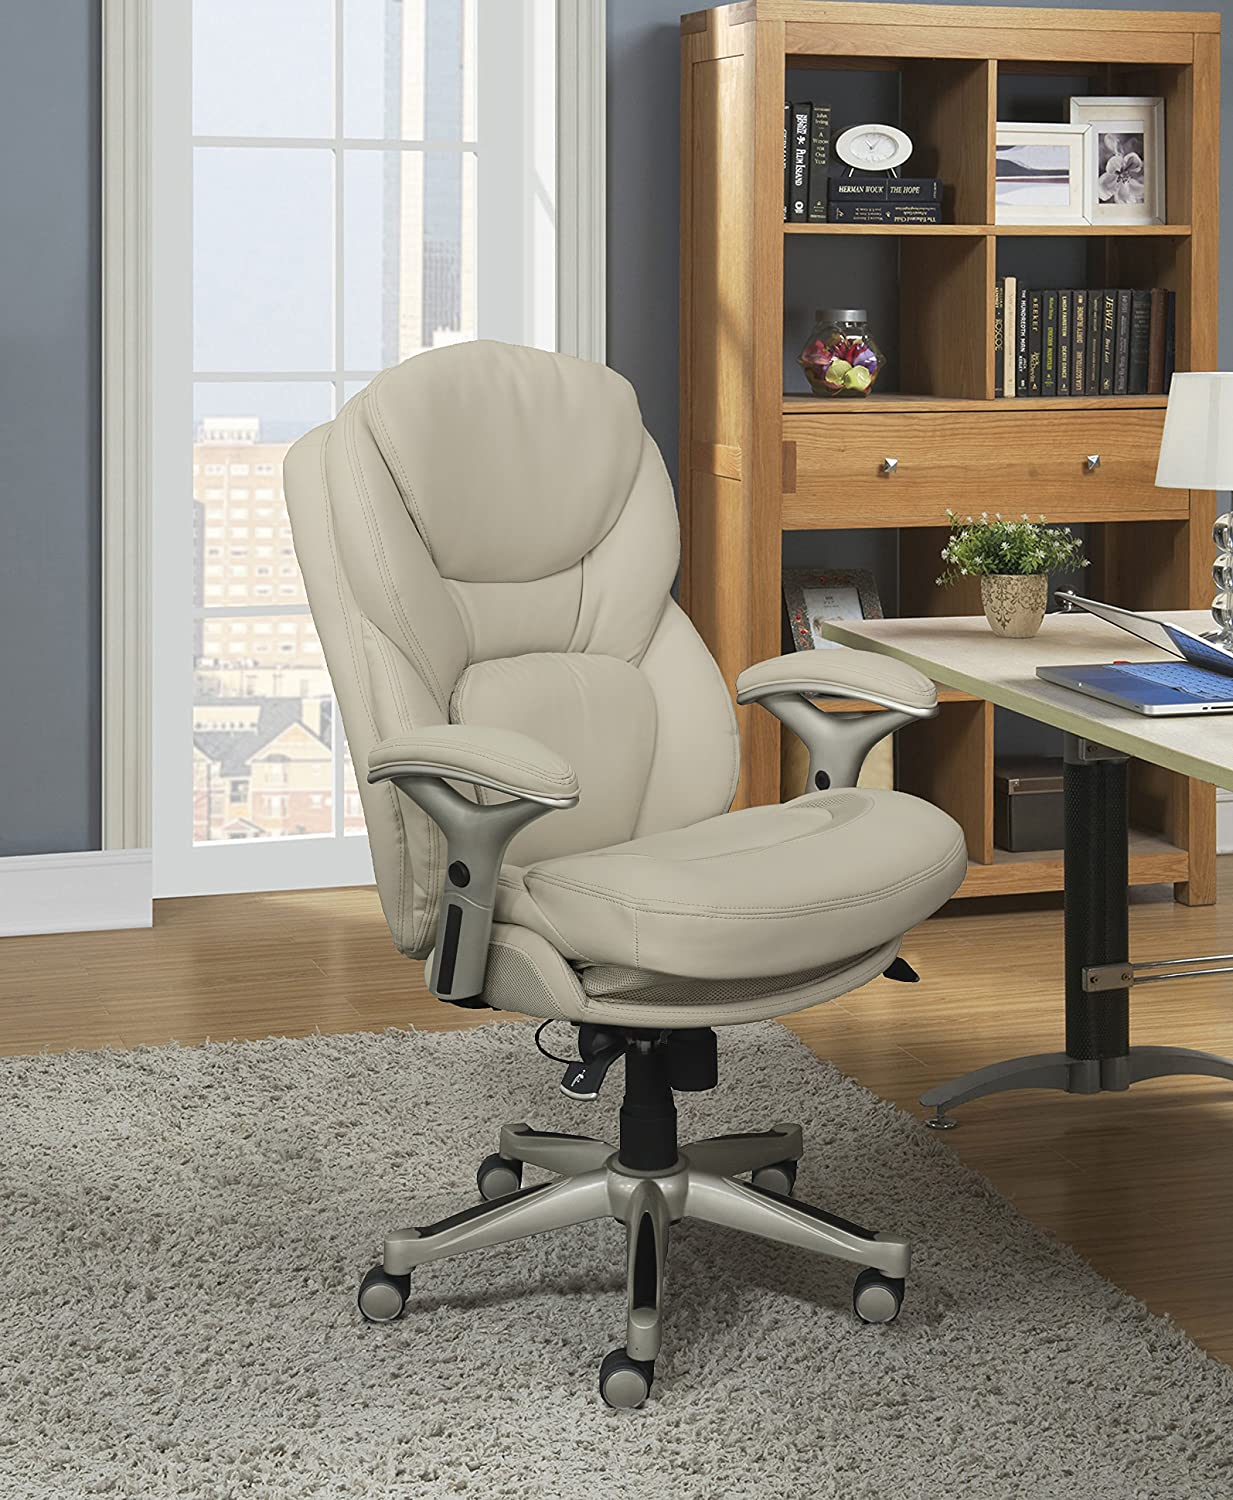 Serta Works Executive Office Chair with Back in Motion Technology, Inspired Ivory Bonded Leather